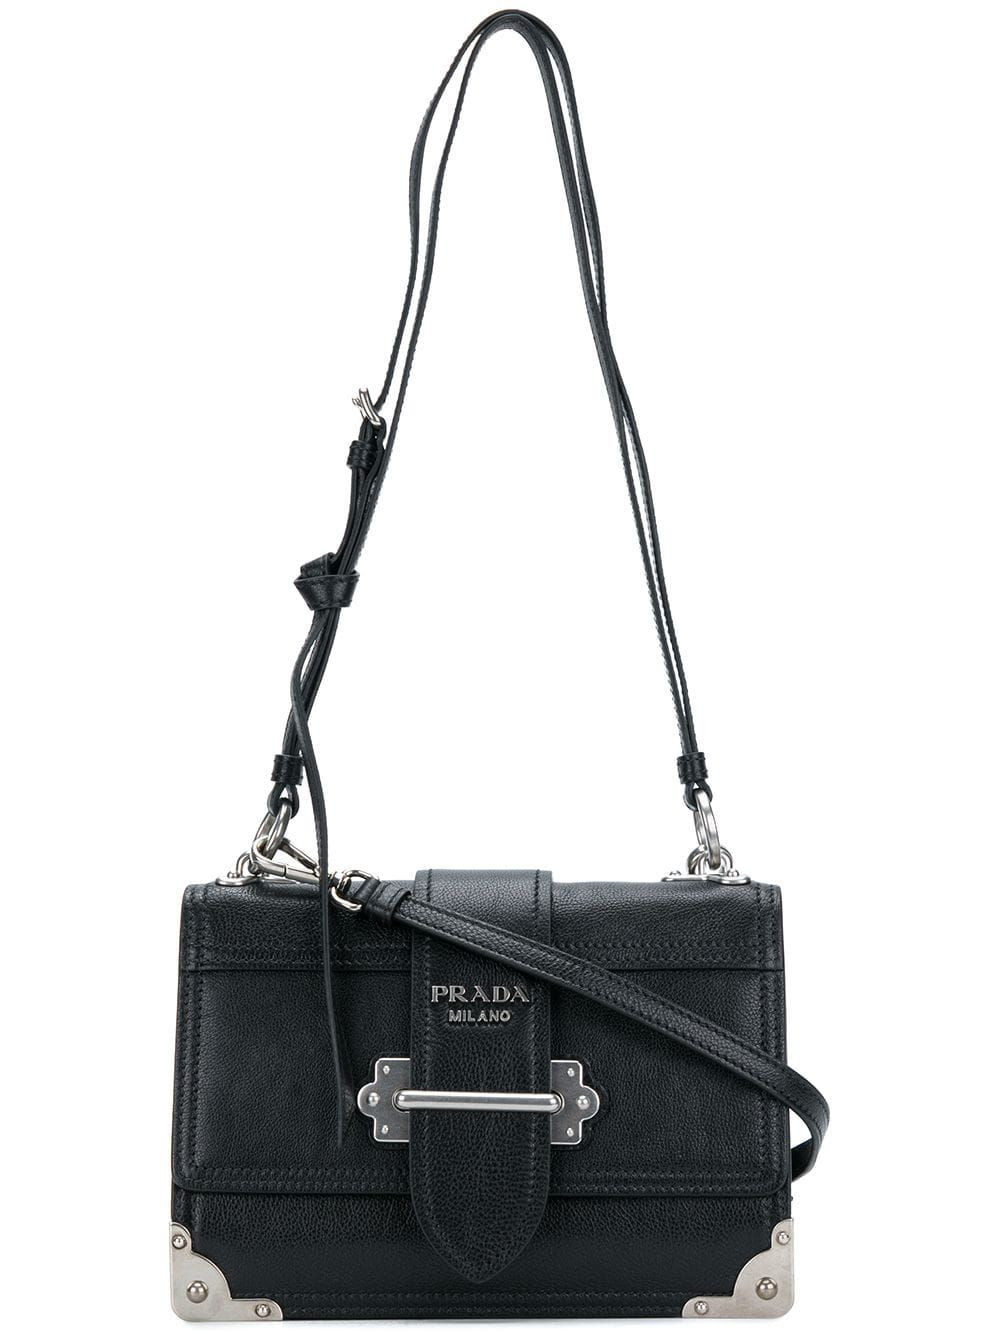 ab7c0974a2 Prada Cahier shoulder bag - Black in 2019 | Products | Bags, Womens ...